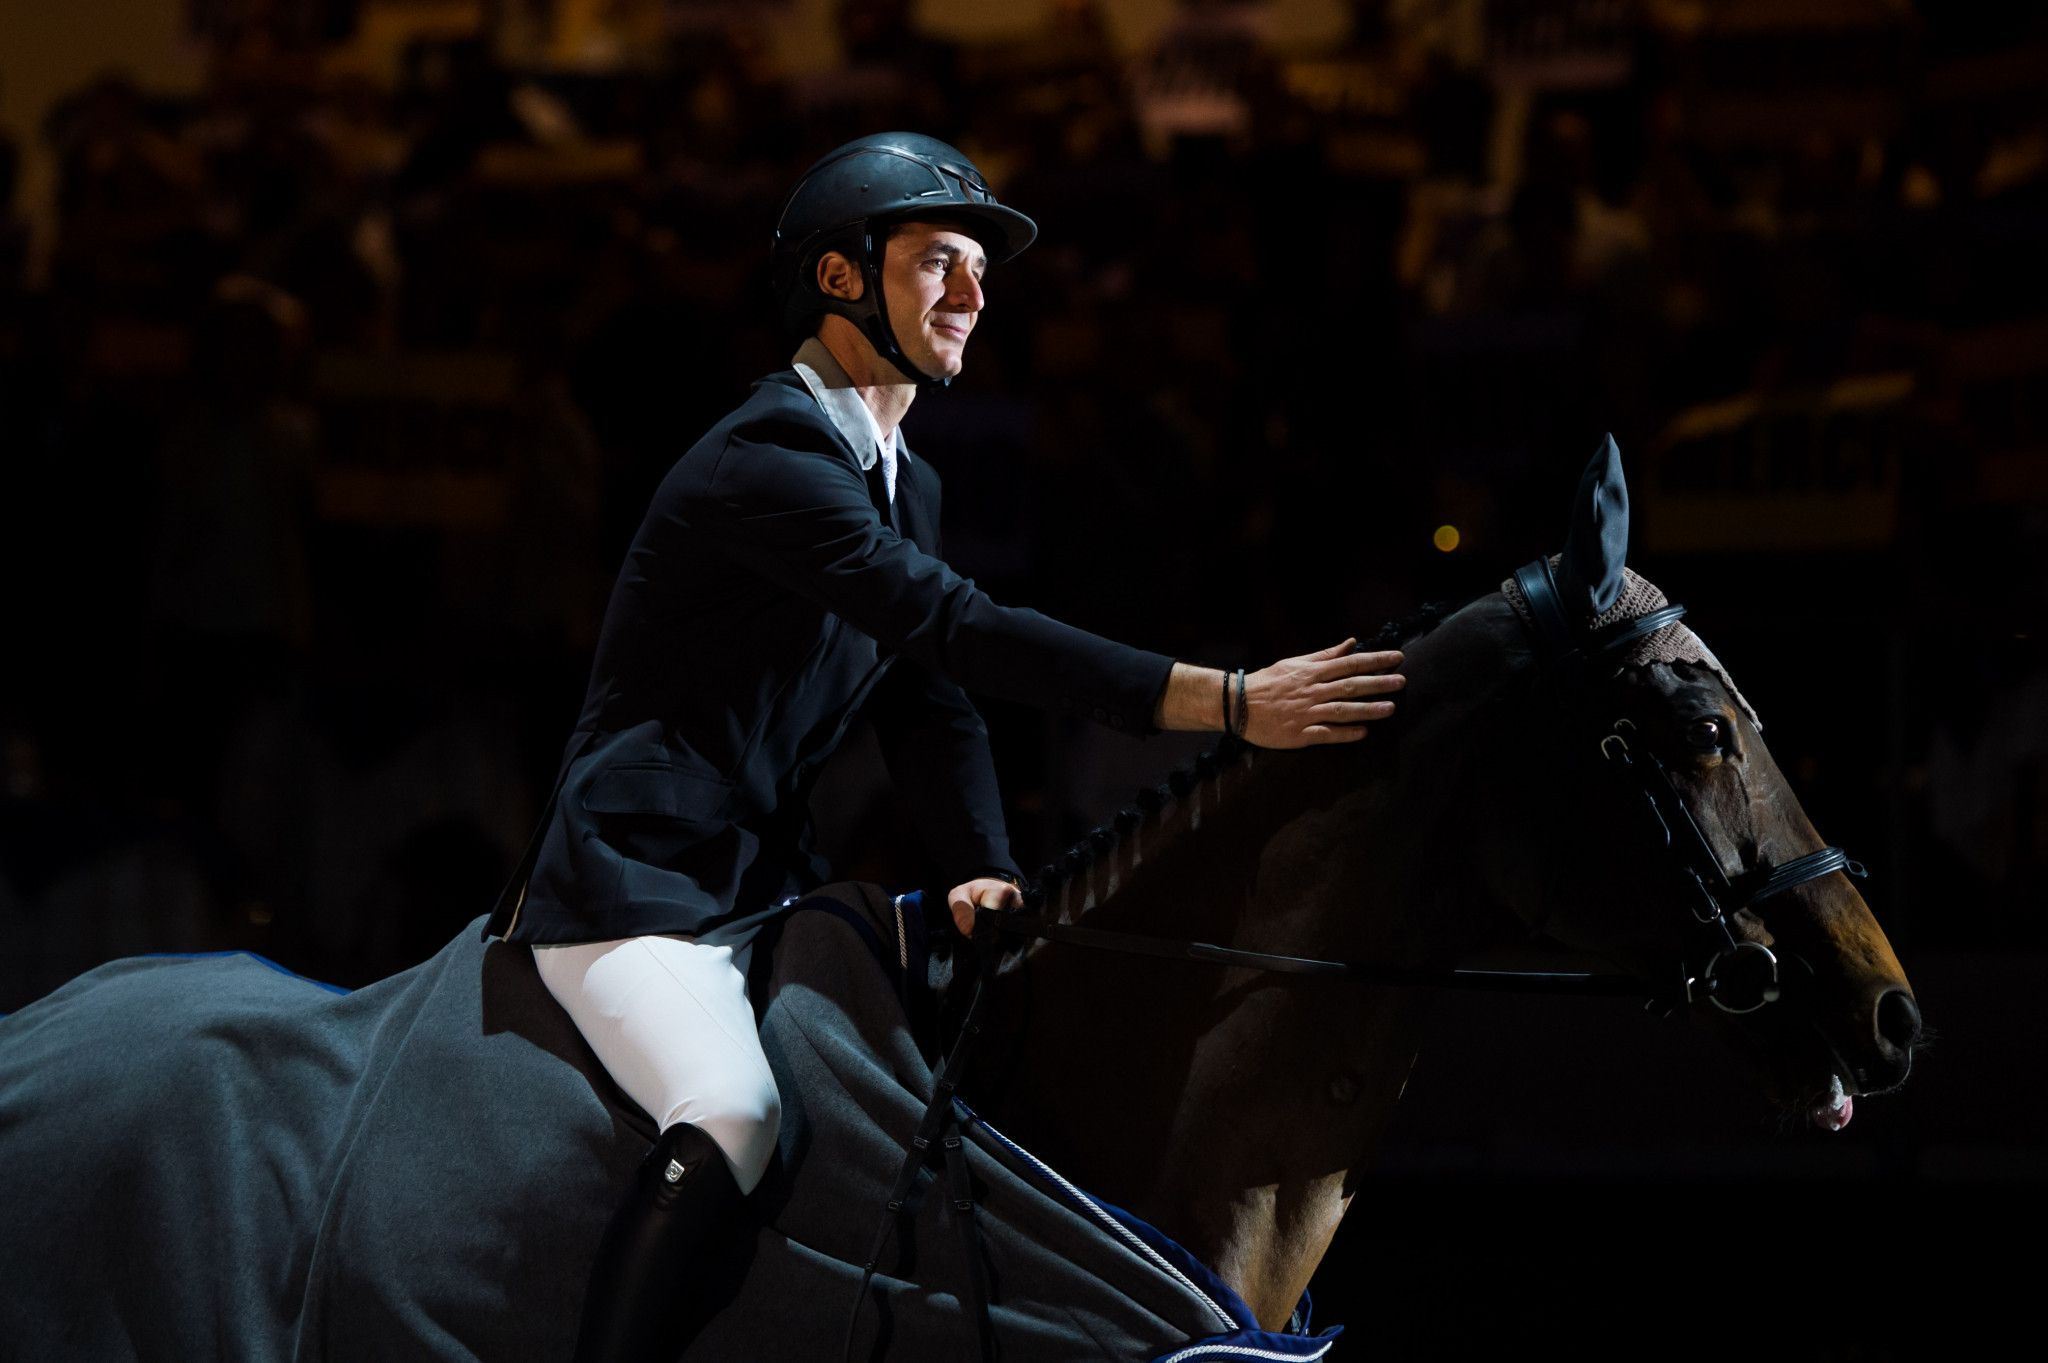 Steve Guerdat will be hoping for success on home soil at the upcoming Longines FEI Nations Cup in St Gallen ©Getty Images